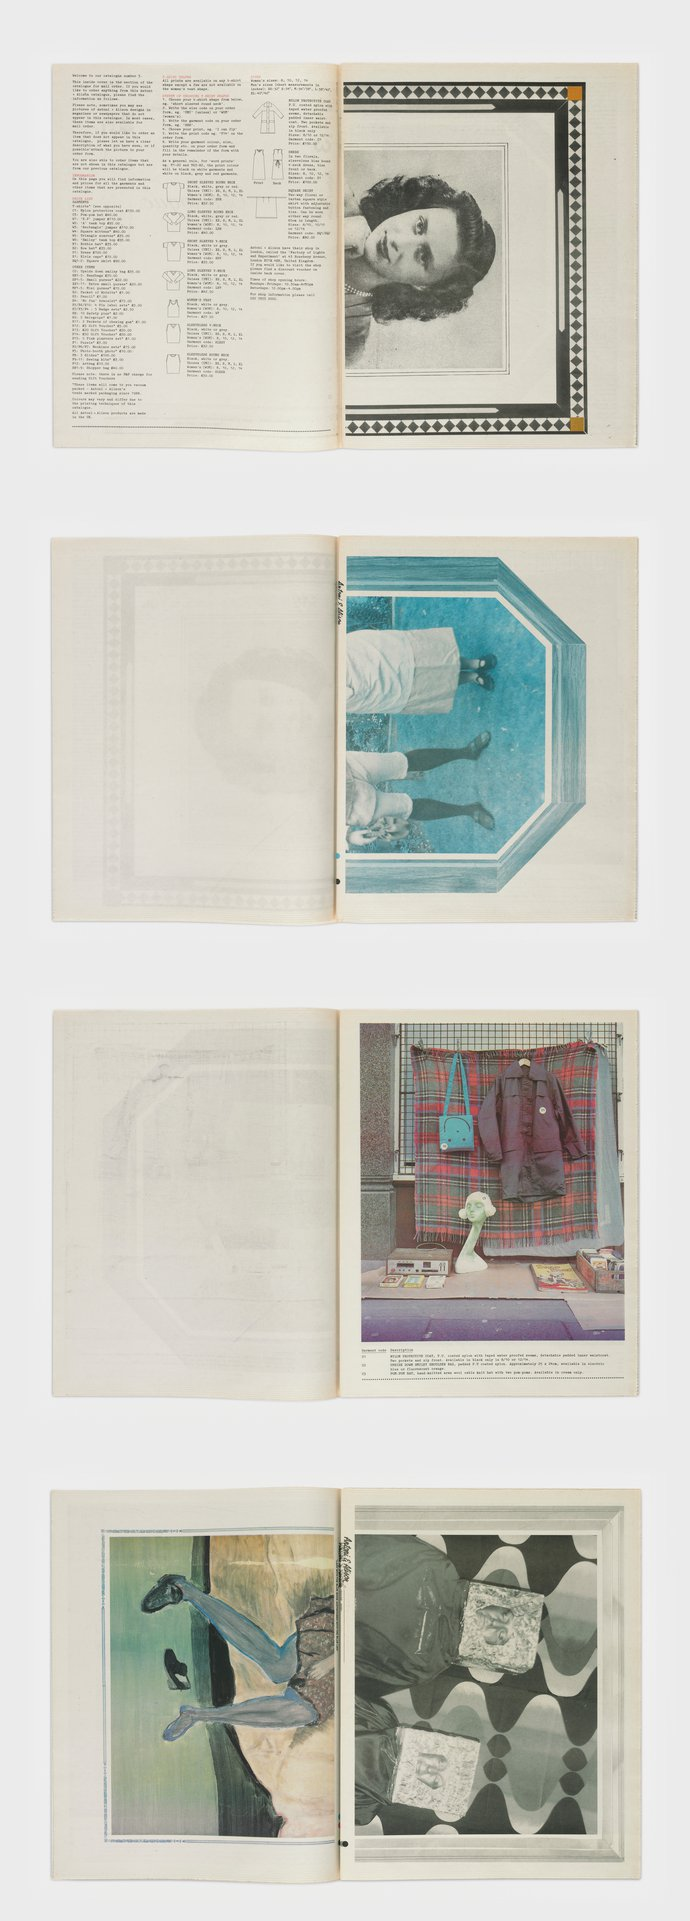 Antoni and Alison – Mail order catalogue, 1999 (Retail), image 5